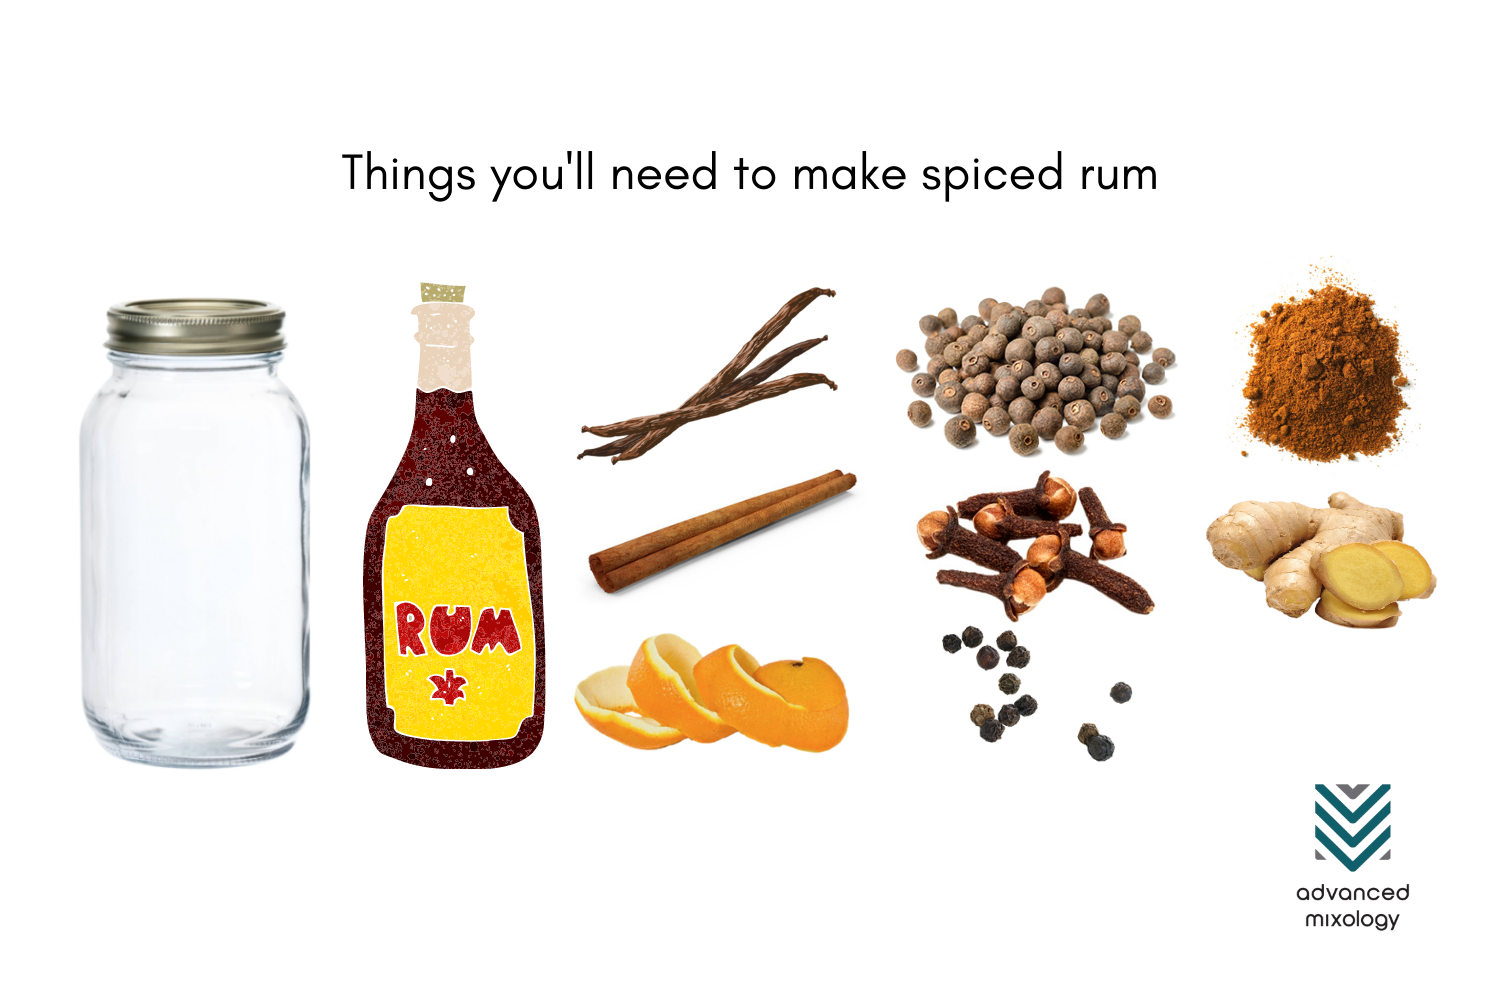 Things you'll need to make spiced rum